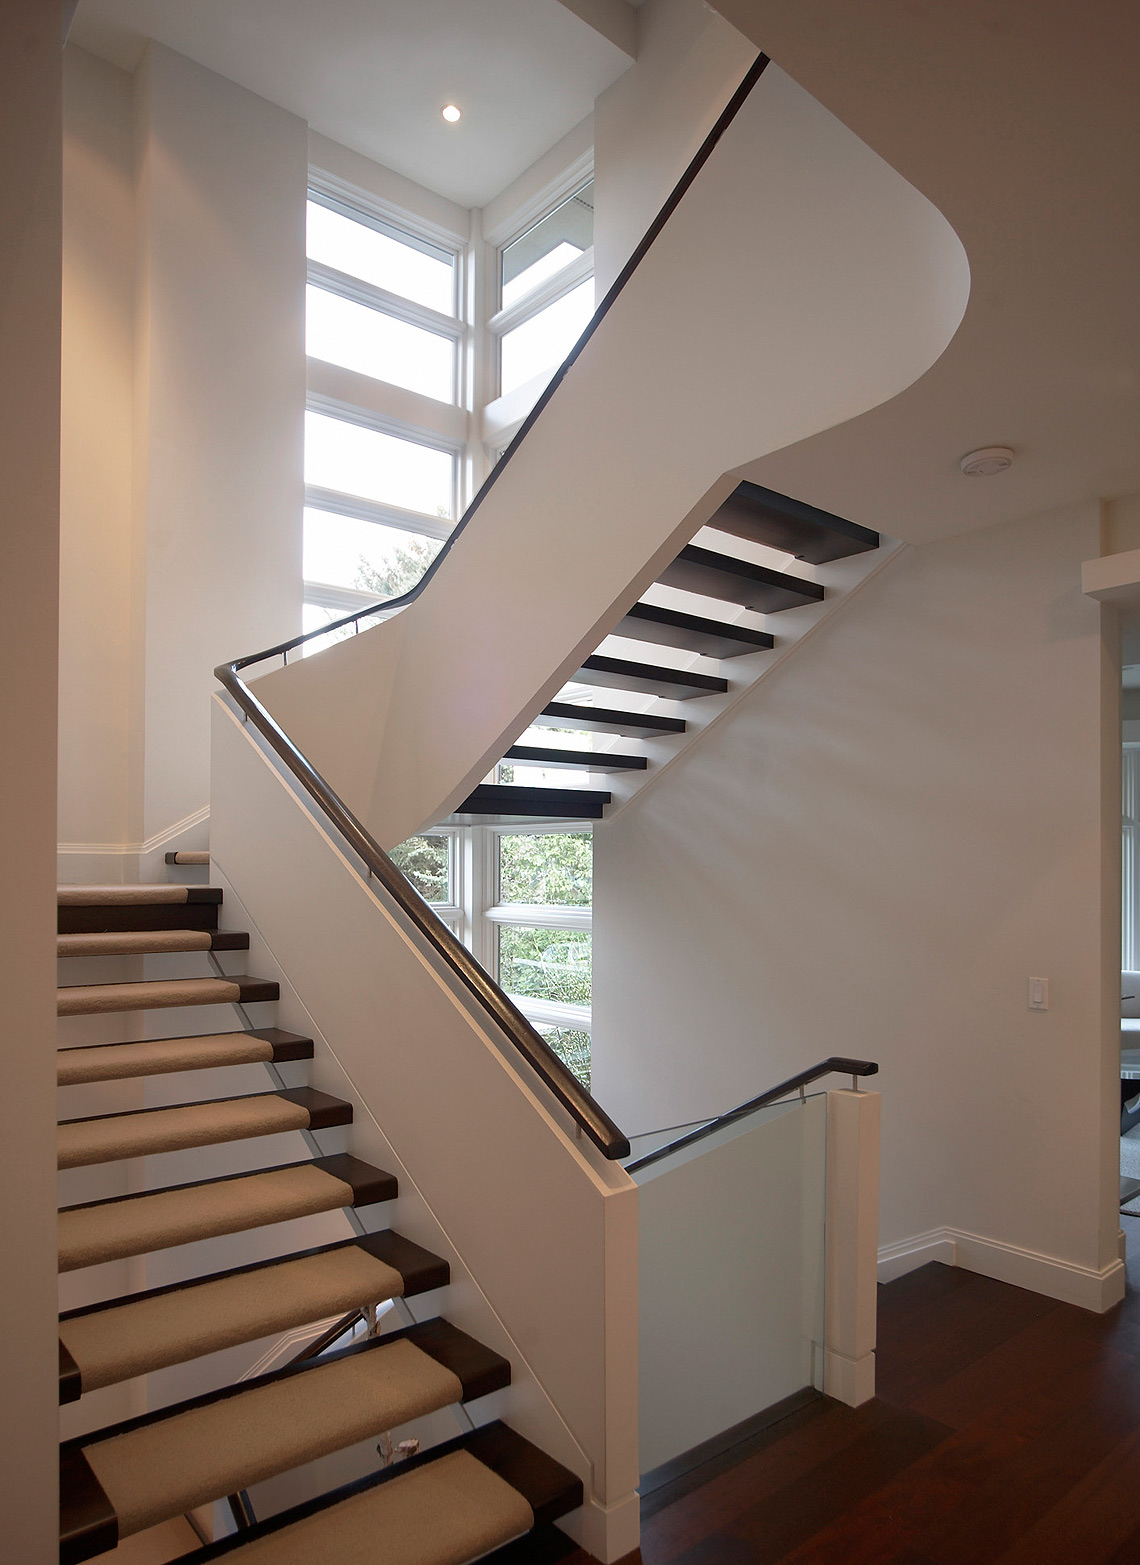 31-interiordesign-modern-MakowArchitects-011-staircase